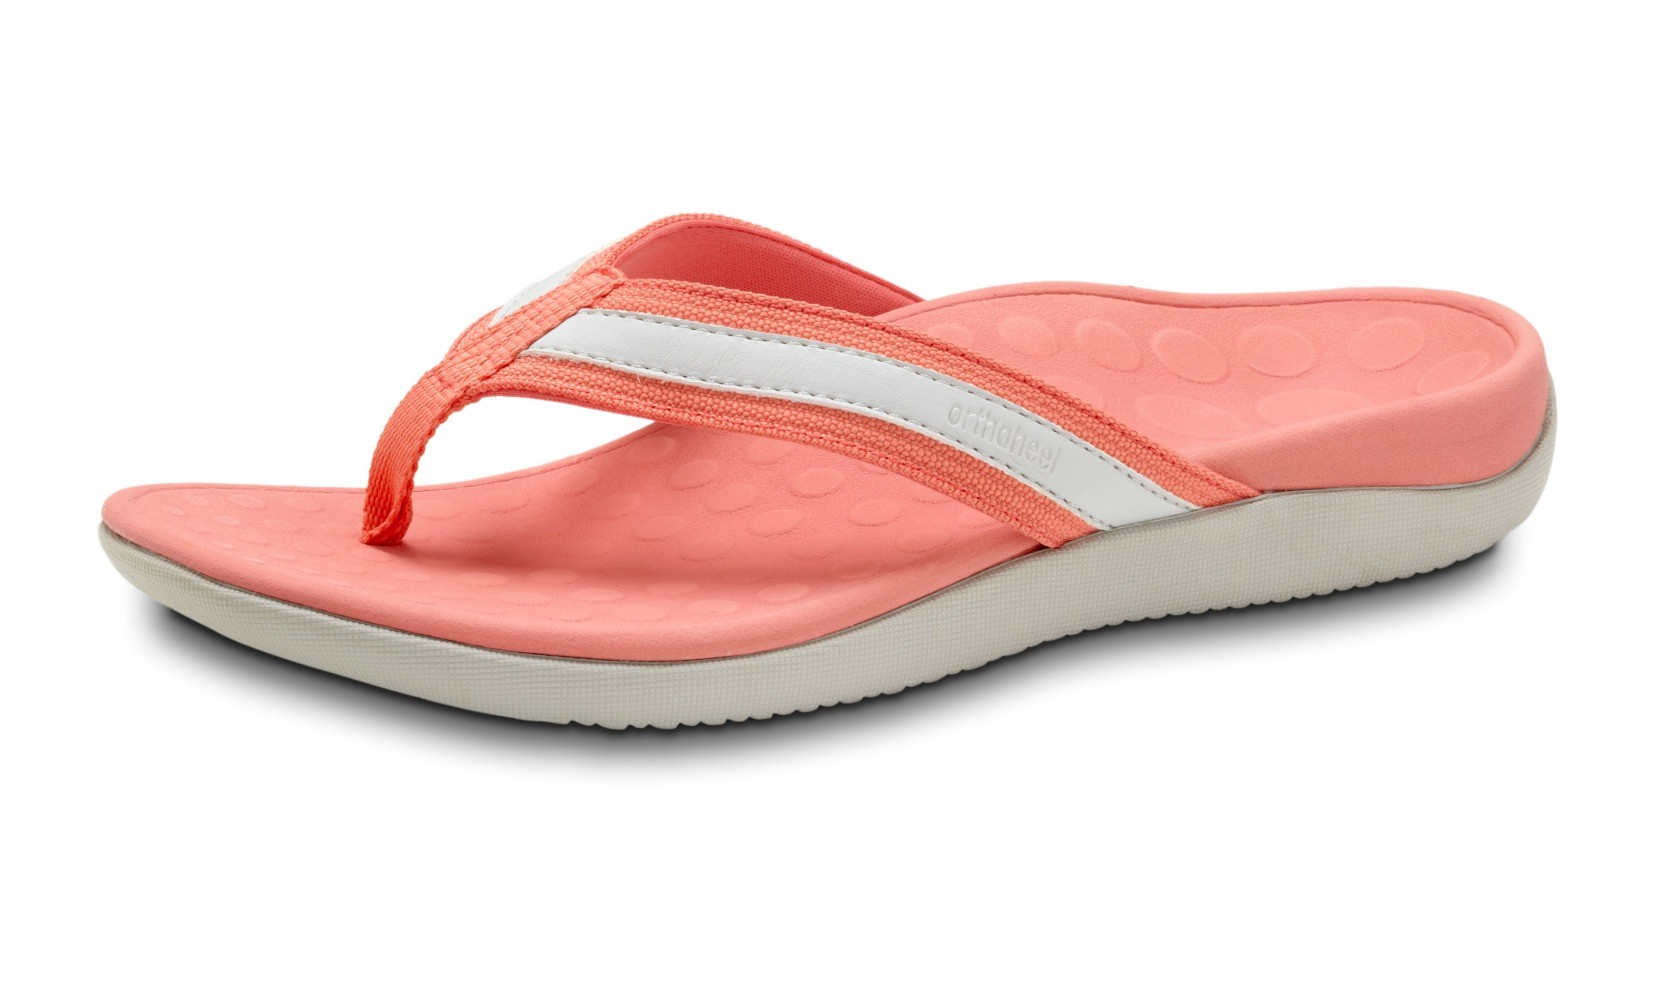 Orthaheel Tide Flip Flop Salmon And Grey Size 9 Online Discount